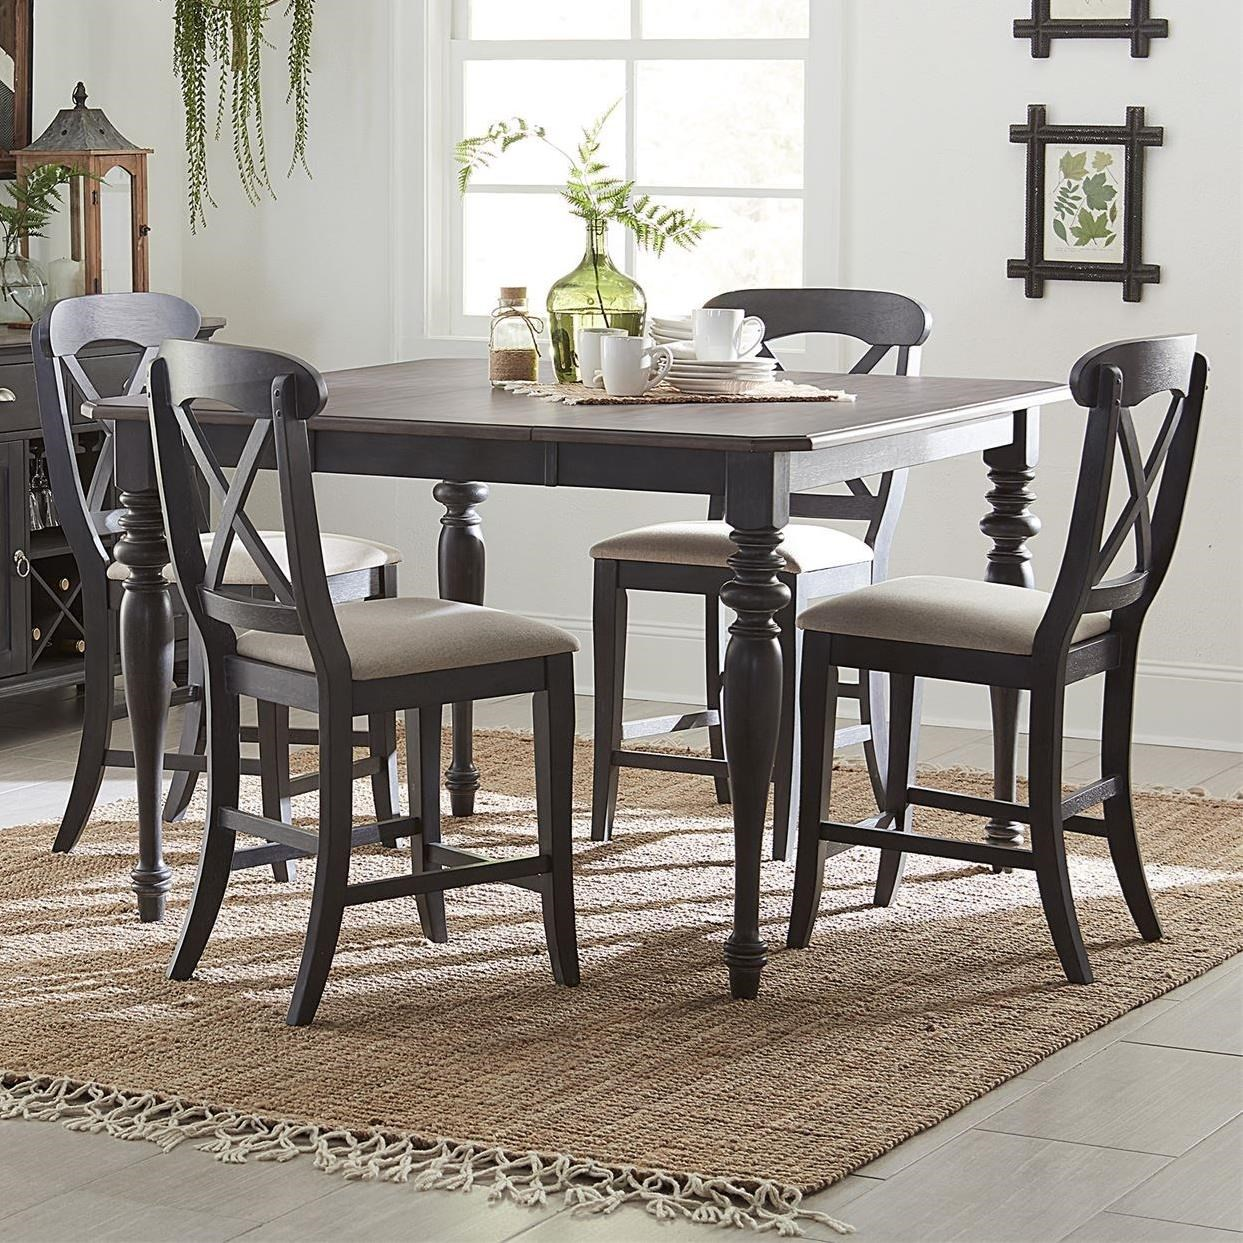 Ocean Isle 5-Piece Gathering Table Set by Liberty Furniture at Johnny Janosik